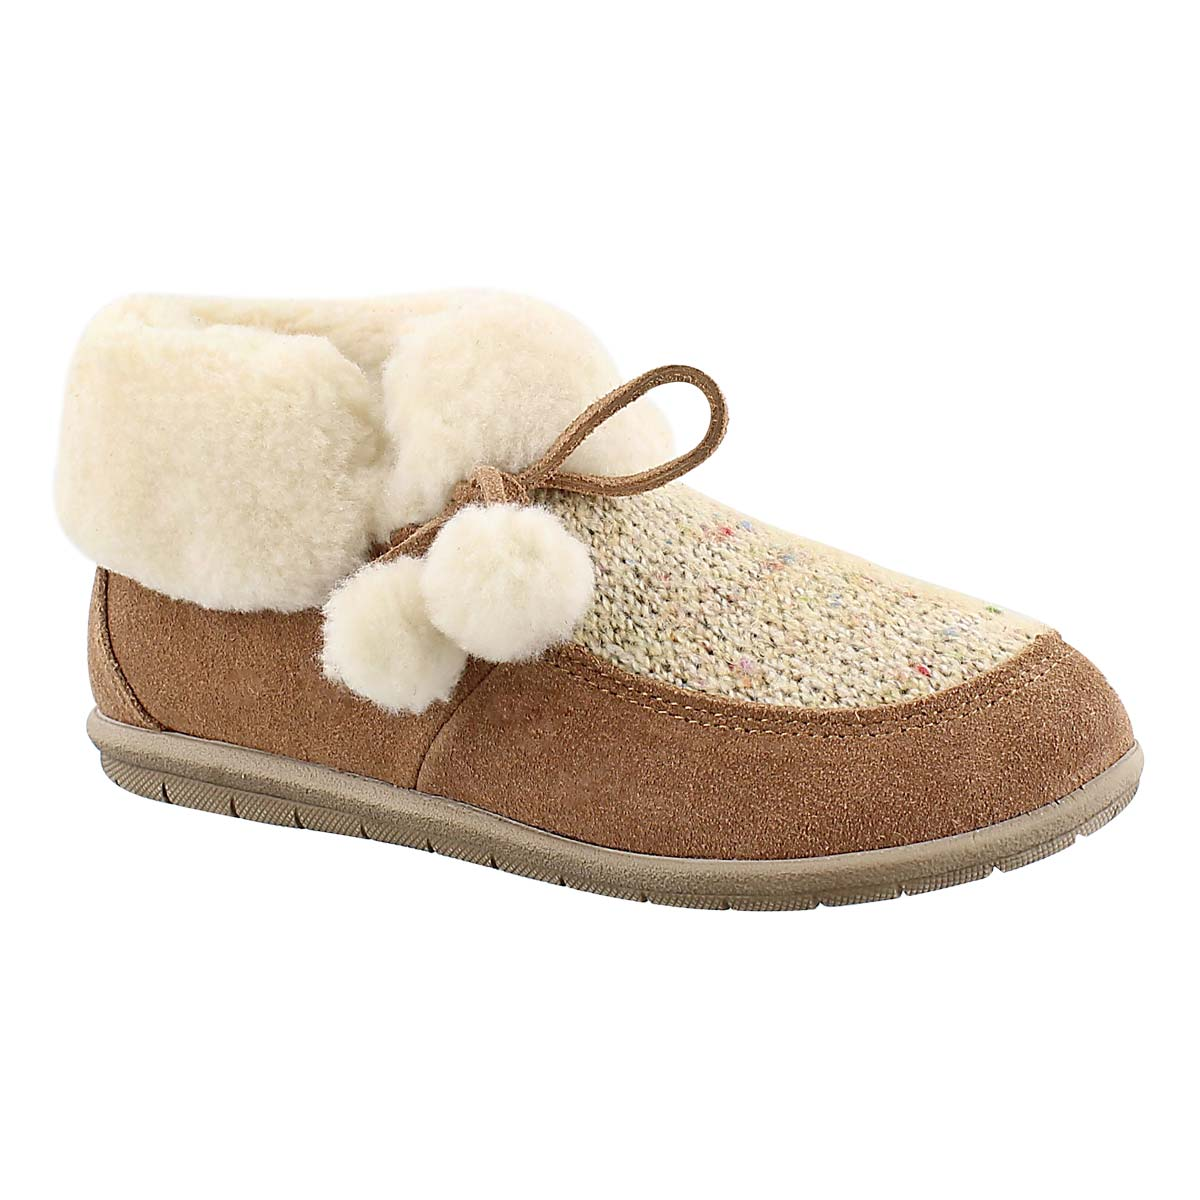 Women's ASPEN tobacco closed back slippers